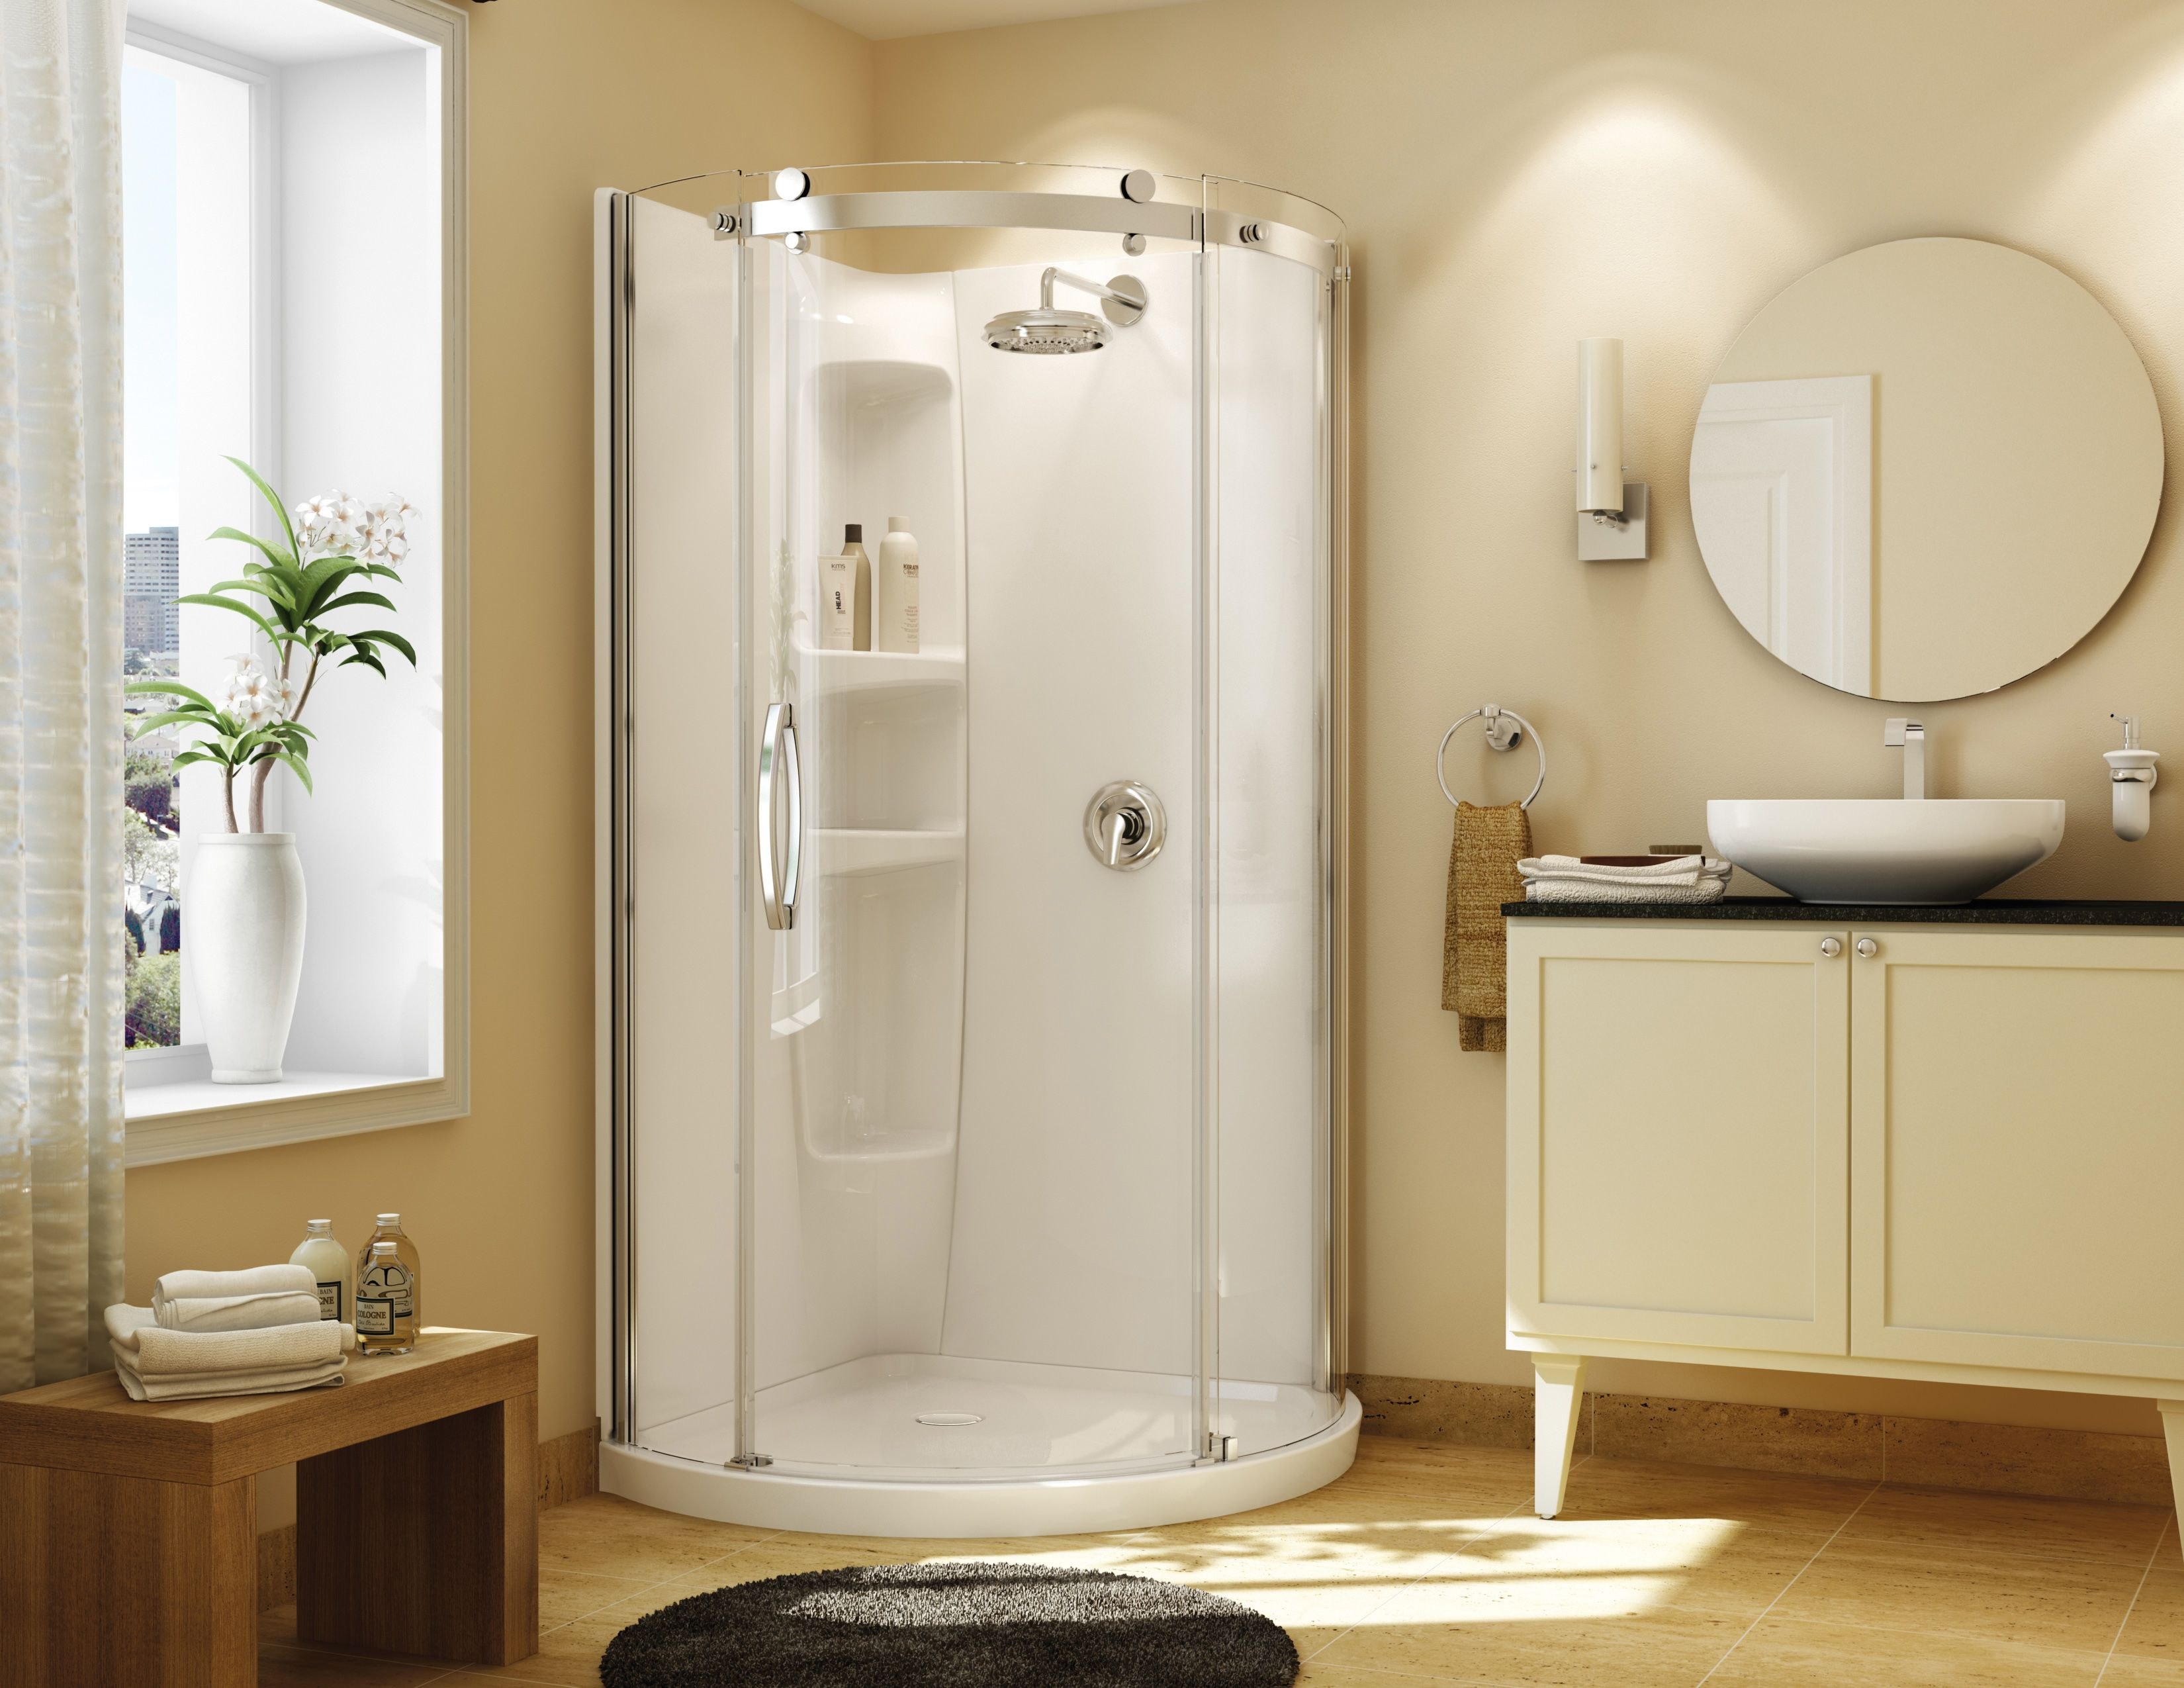 The olympia round shower by maax is the most innovative shower kit on the market that